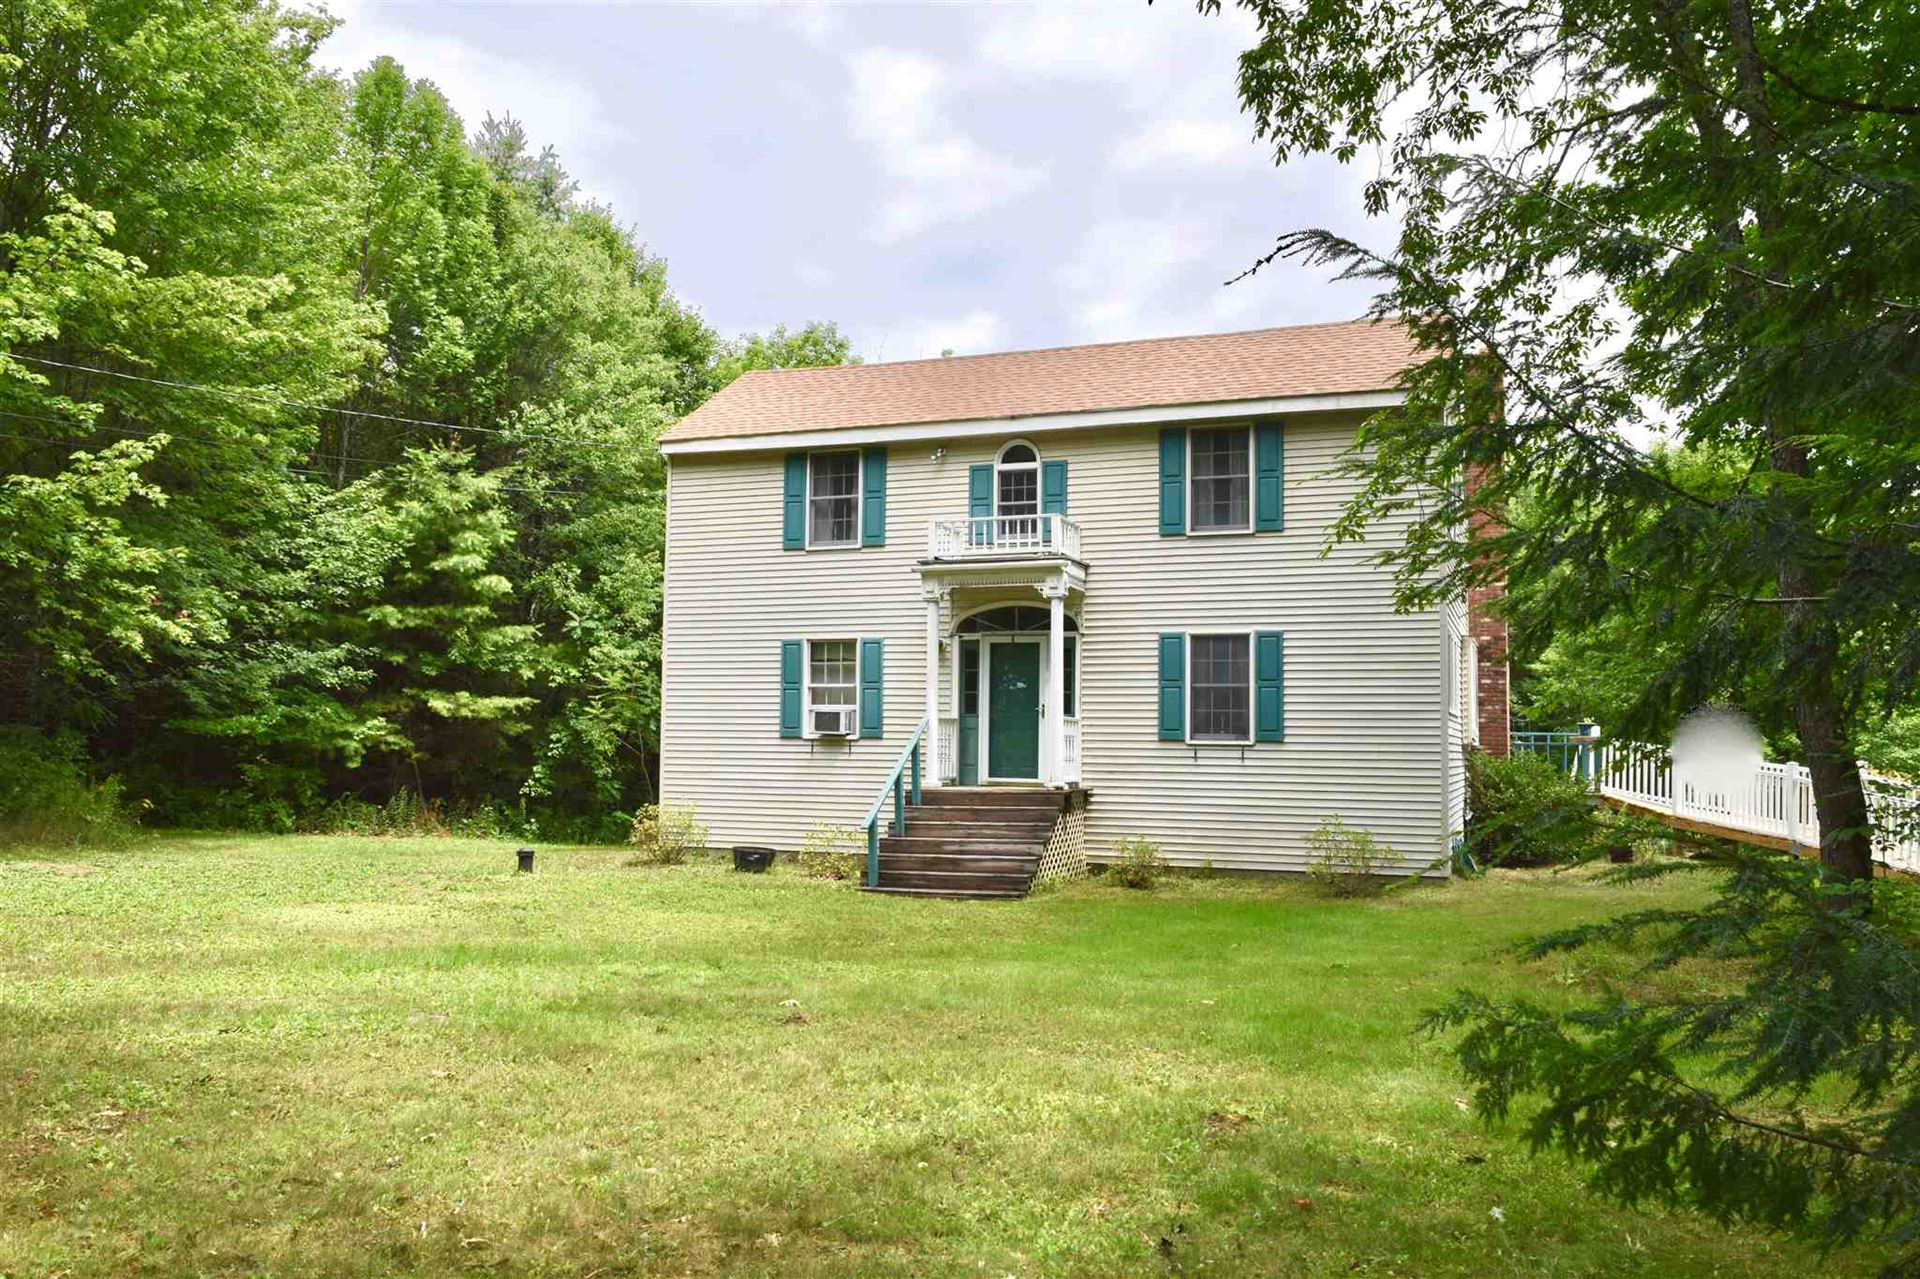 235 Alstead Center  (Route 12A) Road, Alstead, NH 03602 - MLS#: 4818238